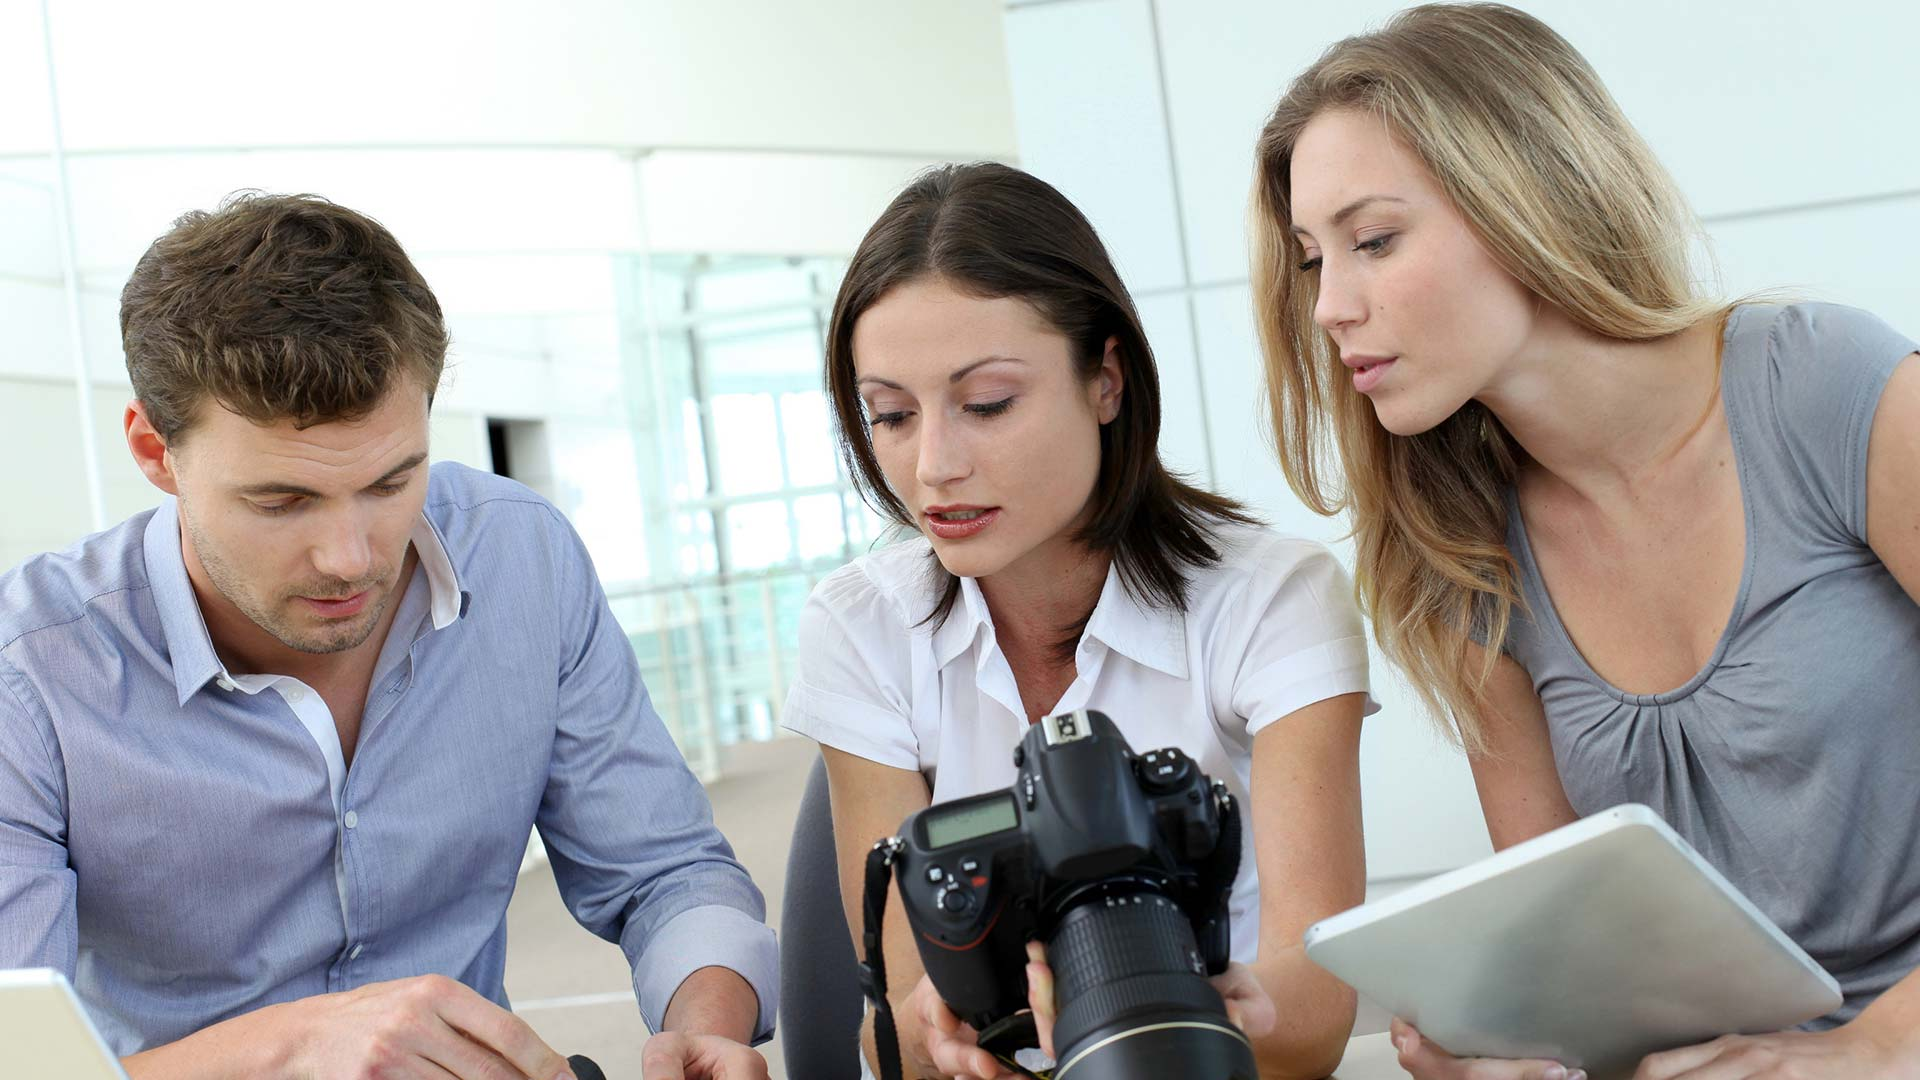 Bachelor of Arts in Communication – Journalism